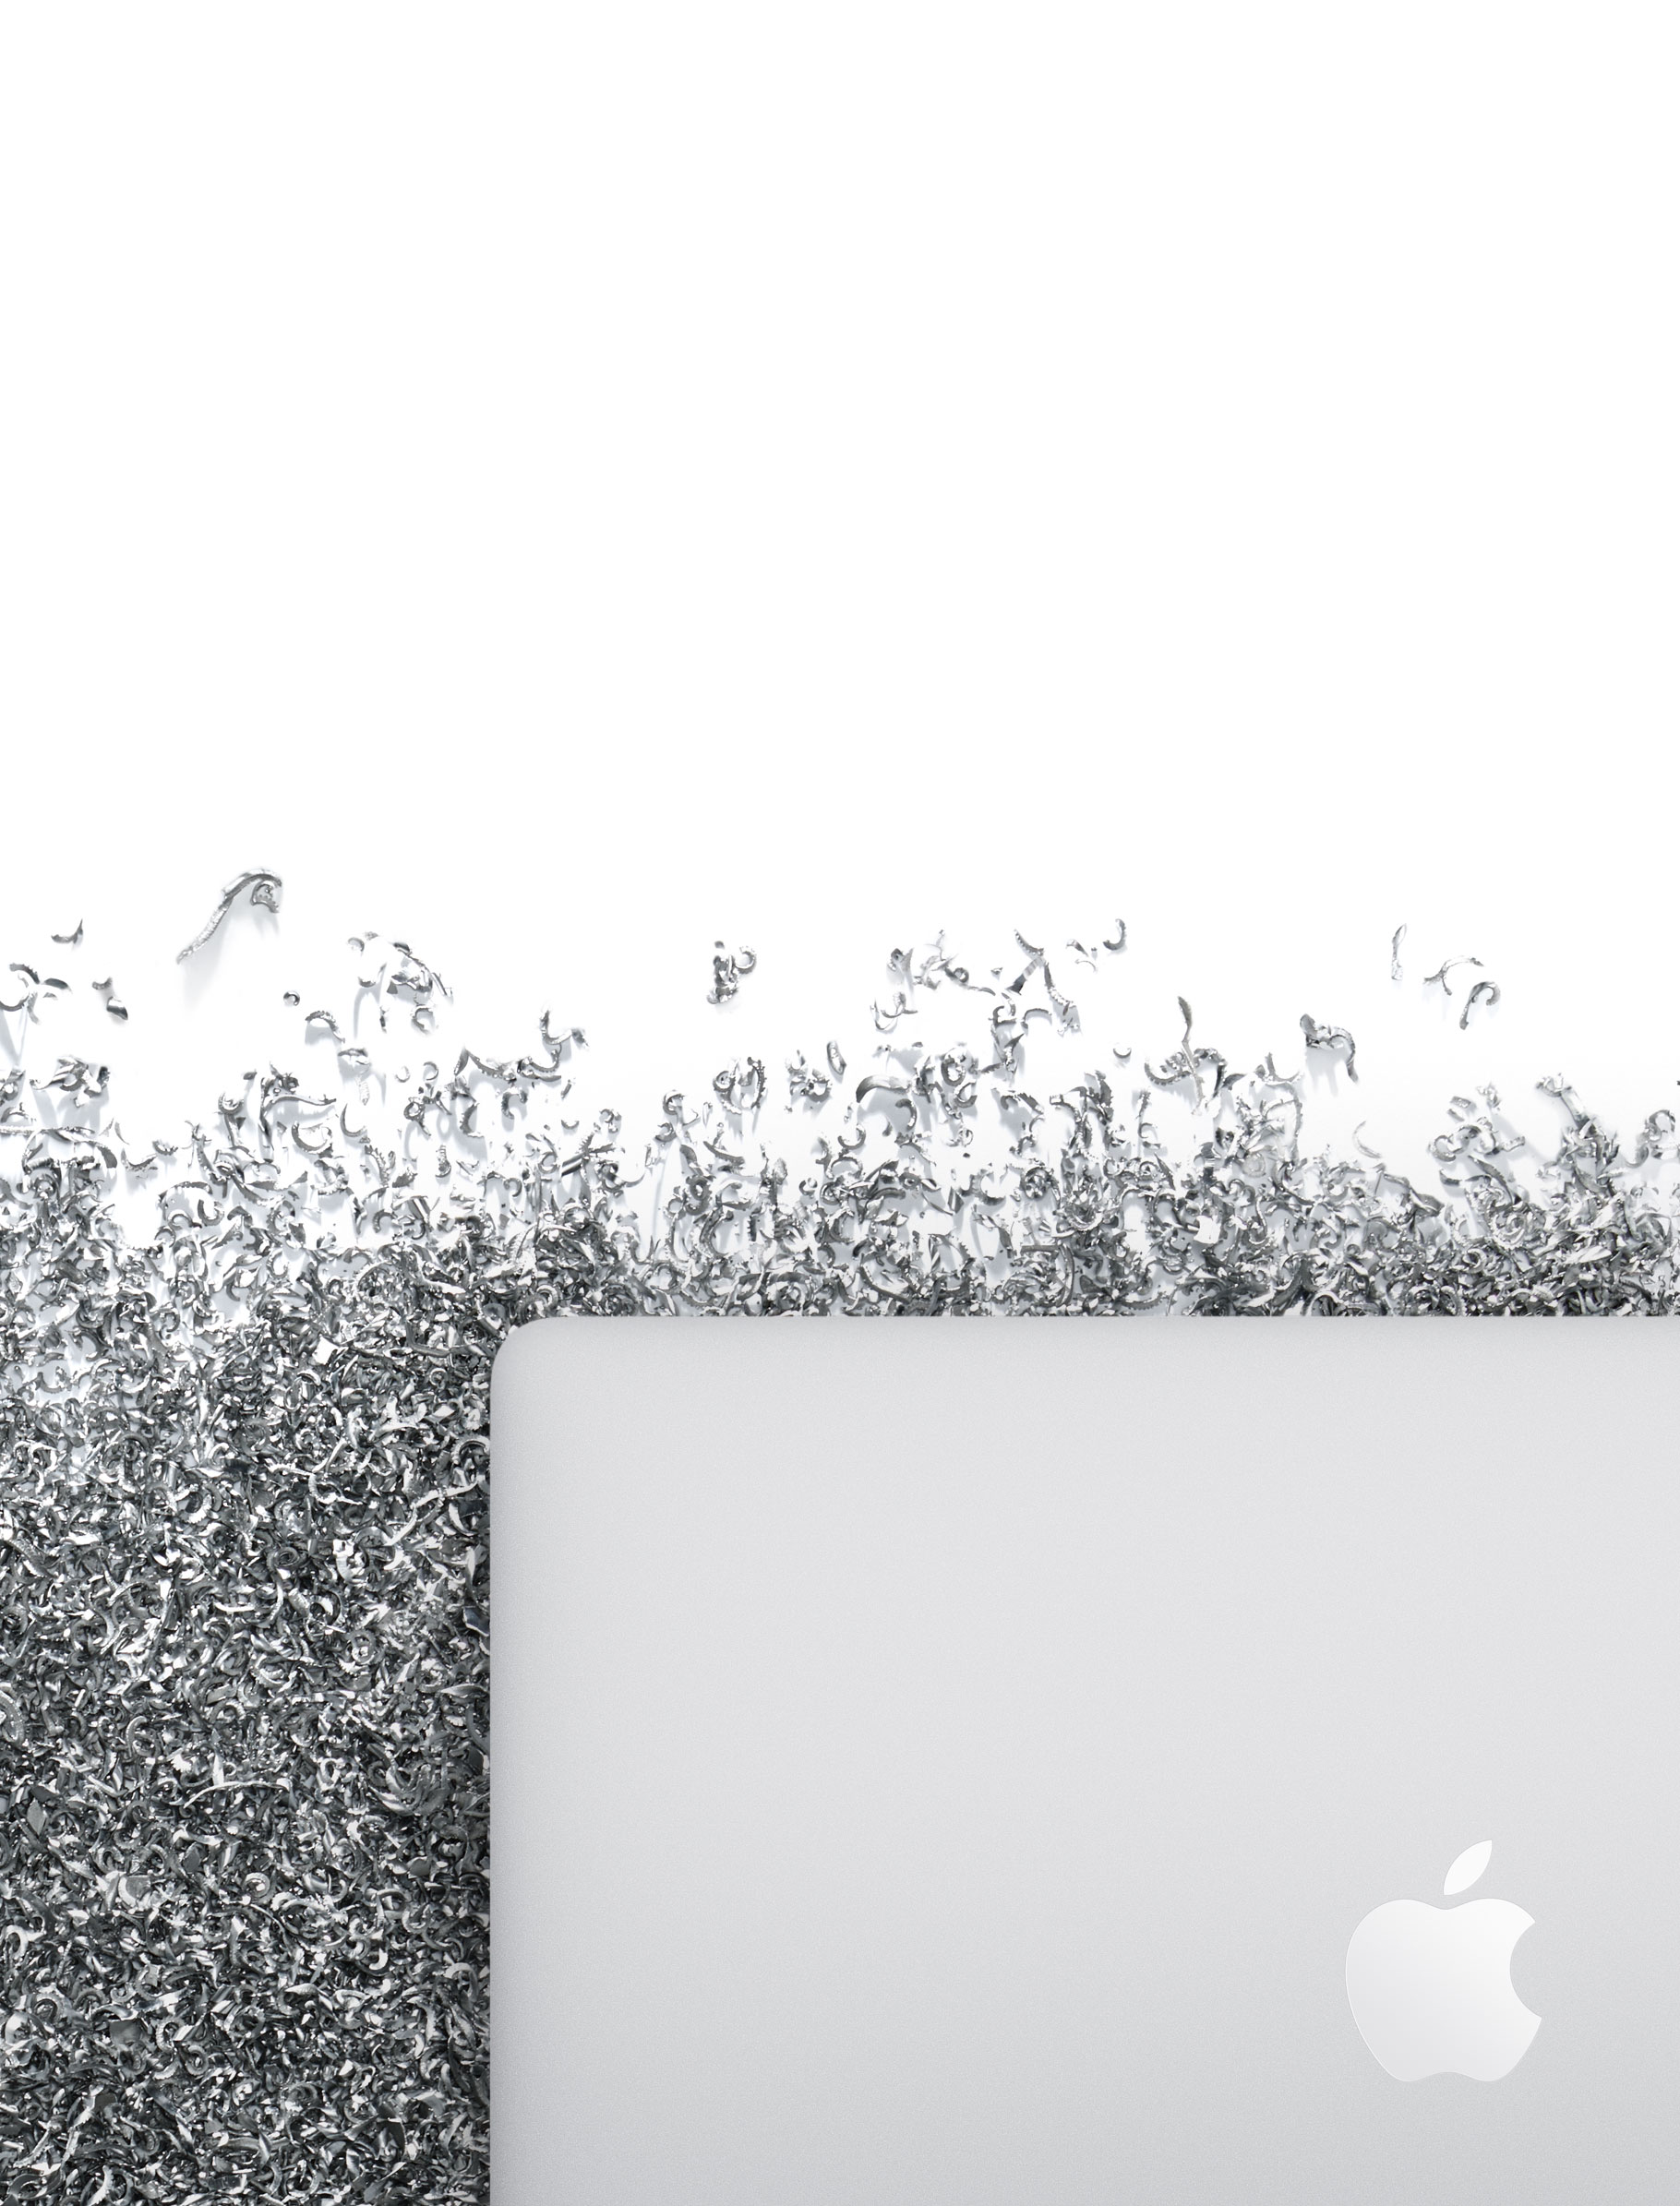 MacBook Pro surrounded by aluminium shavings